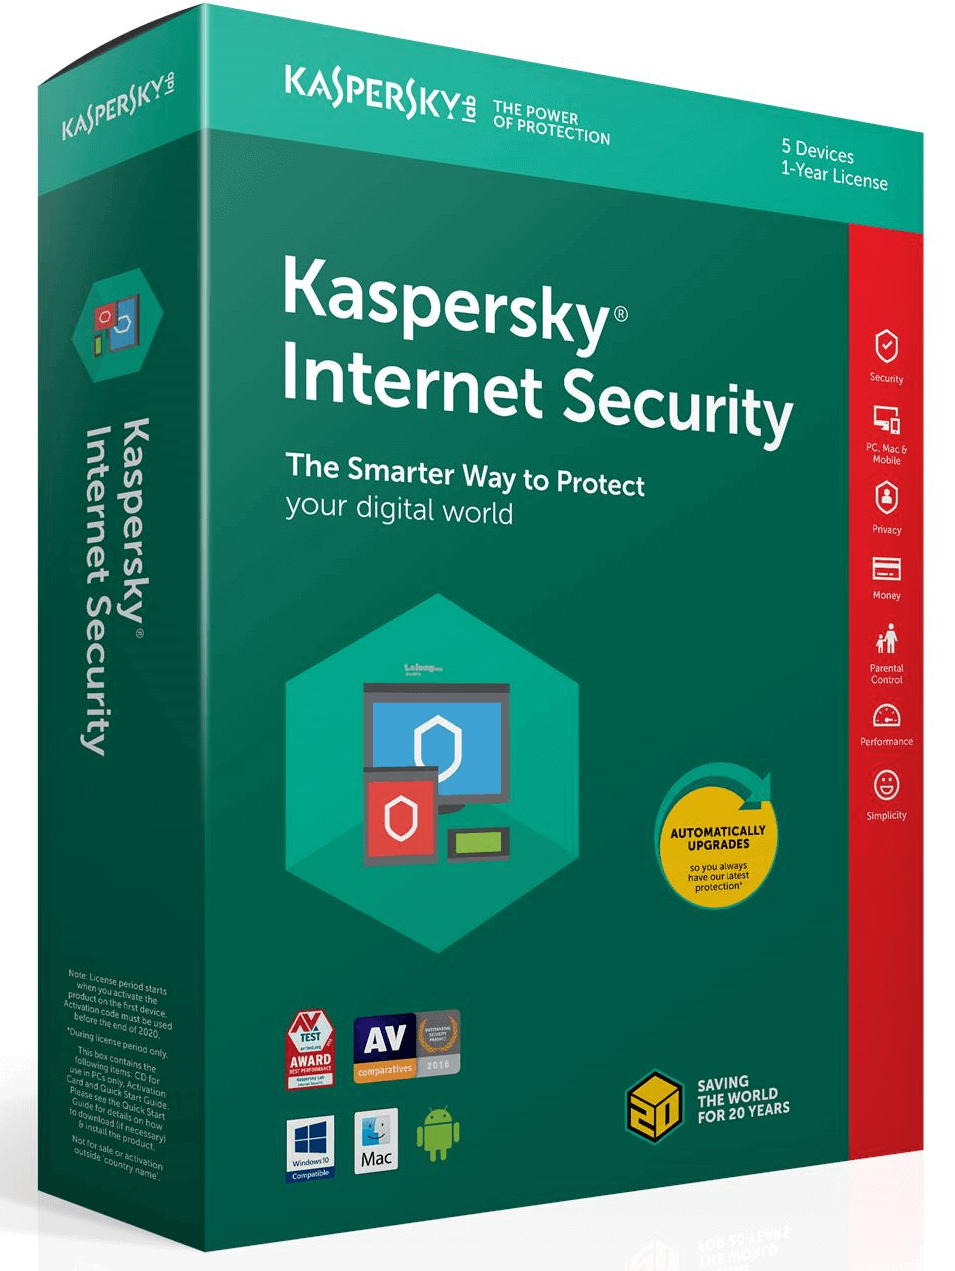 Kaspersky Internet Security Review 2021 | Is Kaspersky Internet Security Any Good?